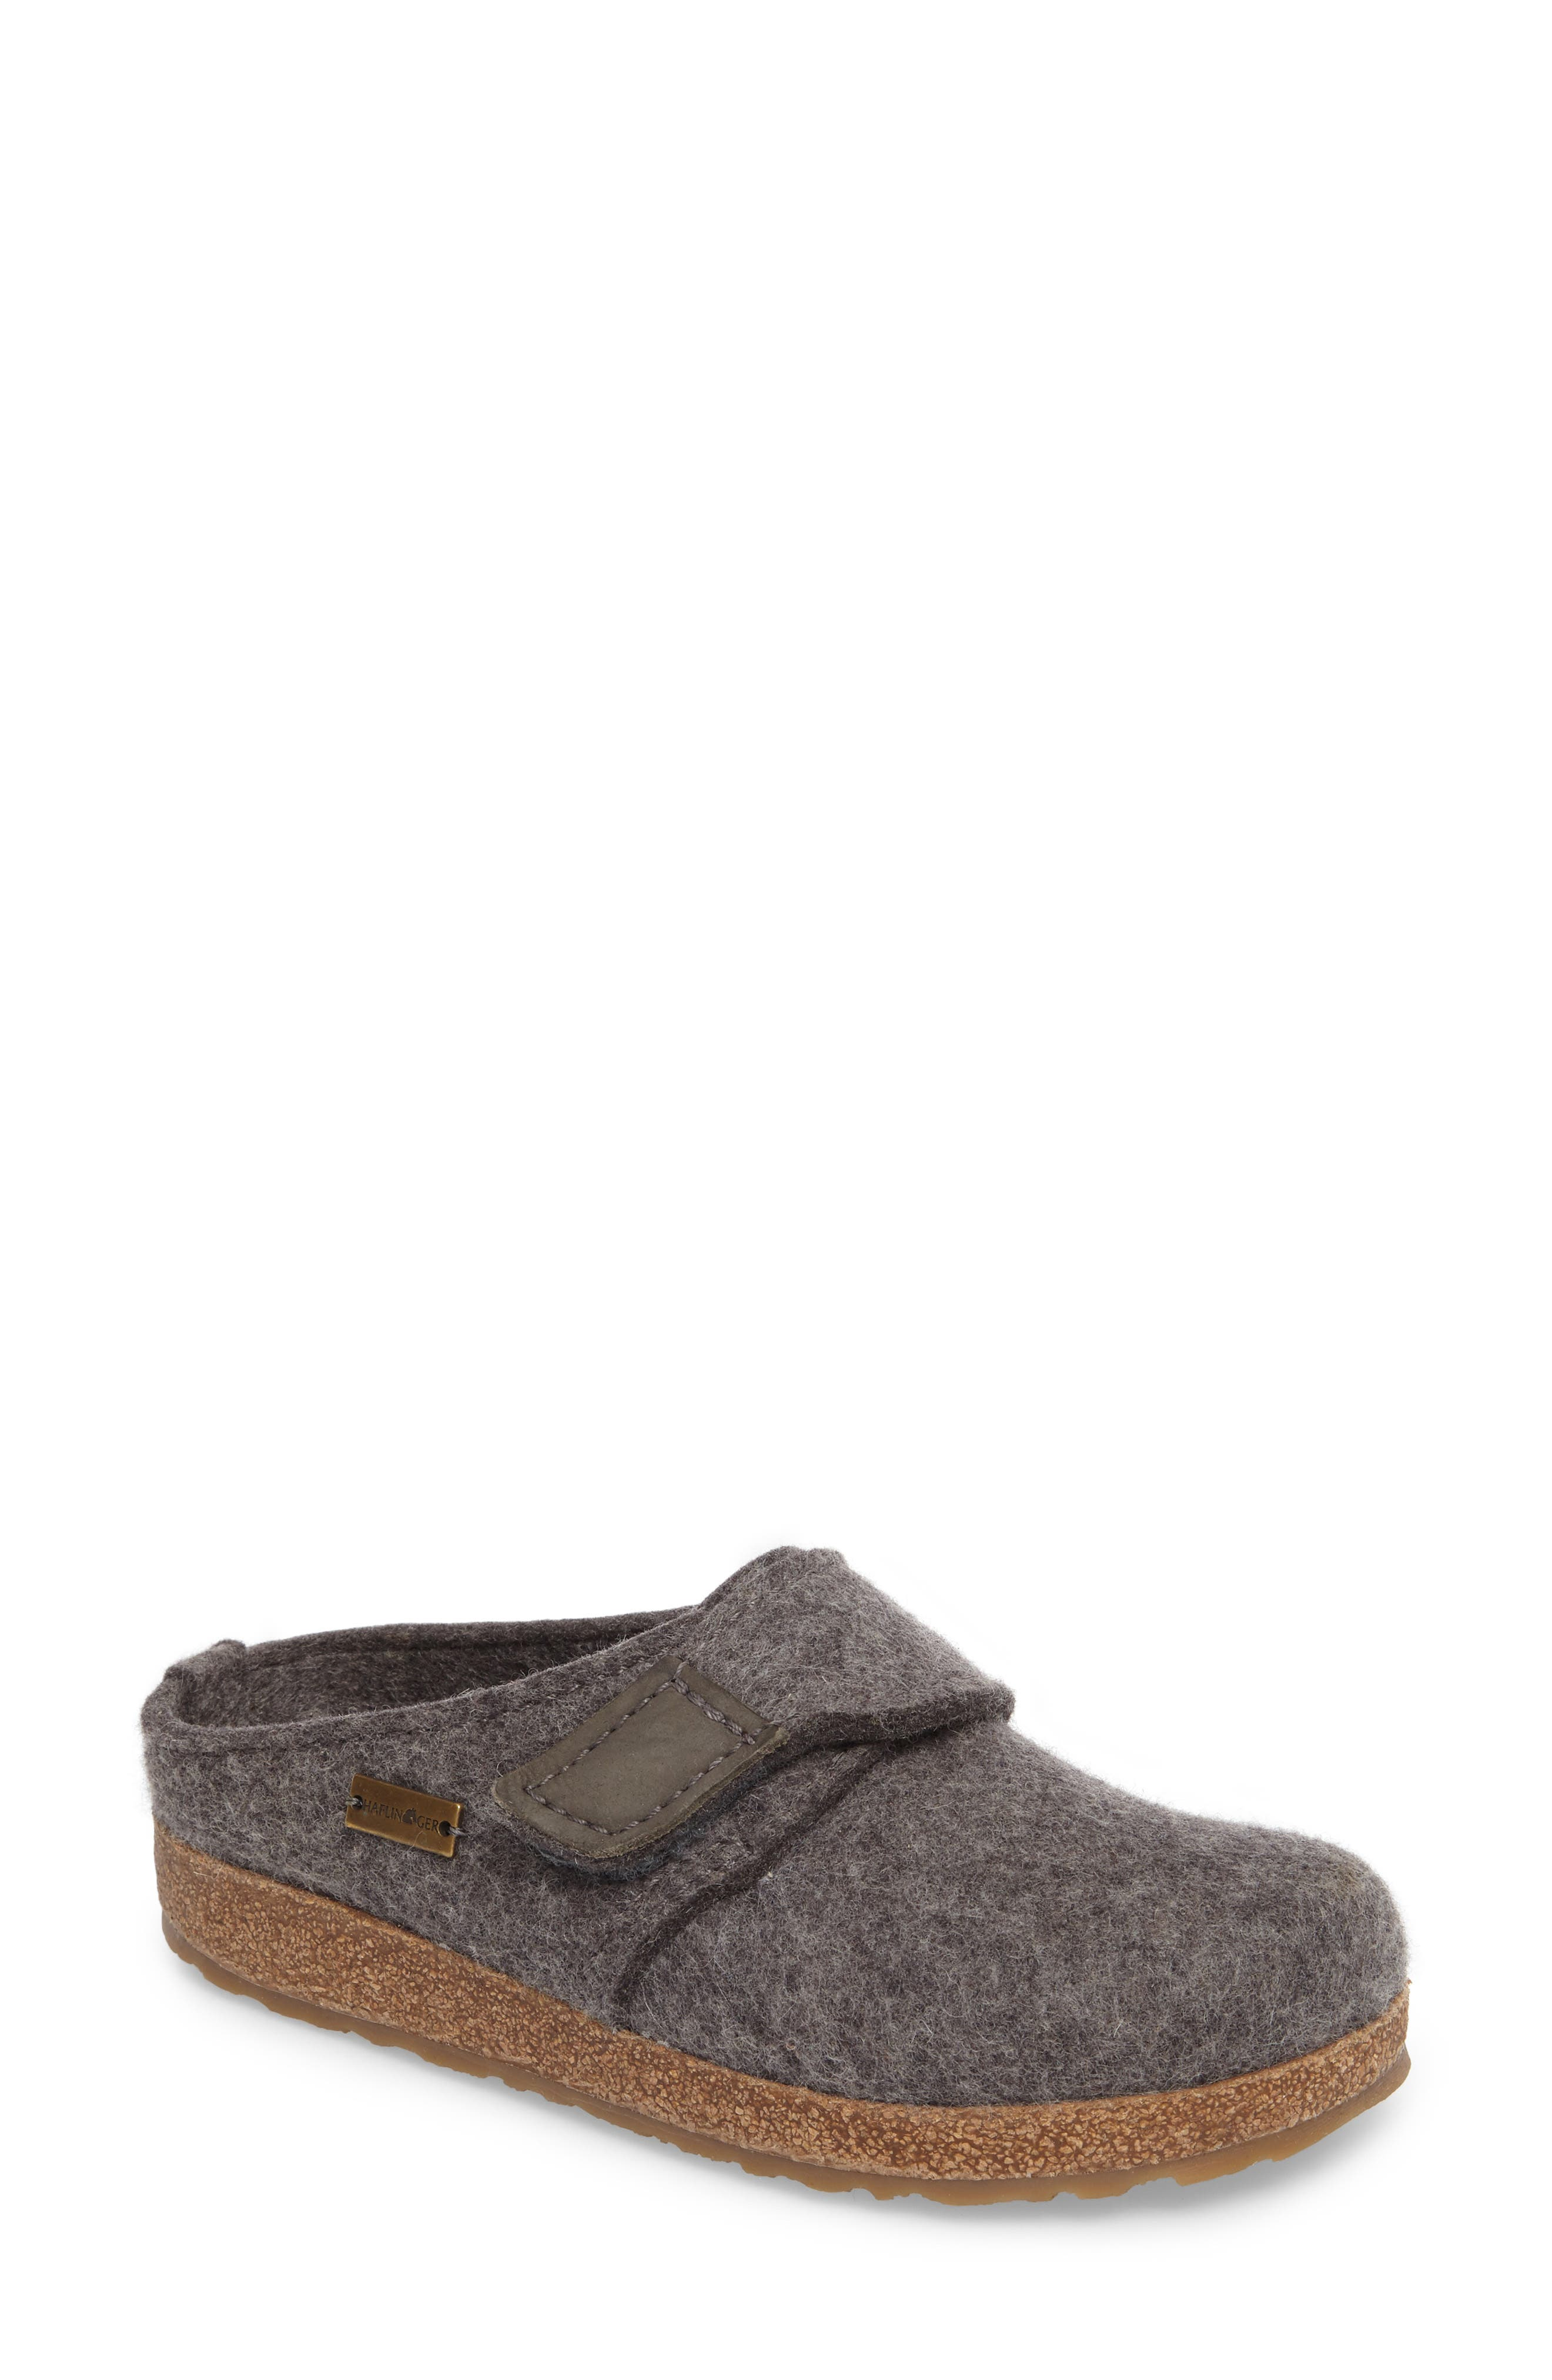 Grizzly Journey Clog Slipper,                         Main,                         color, 020